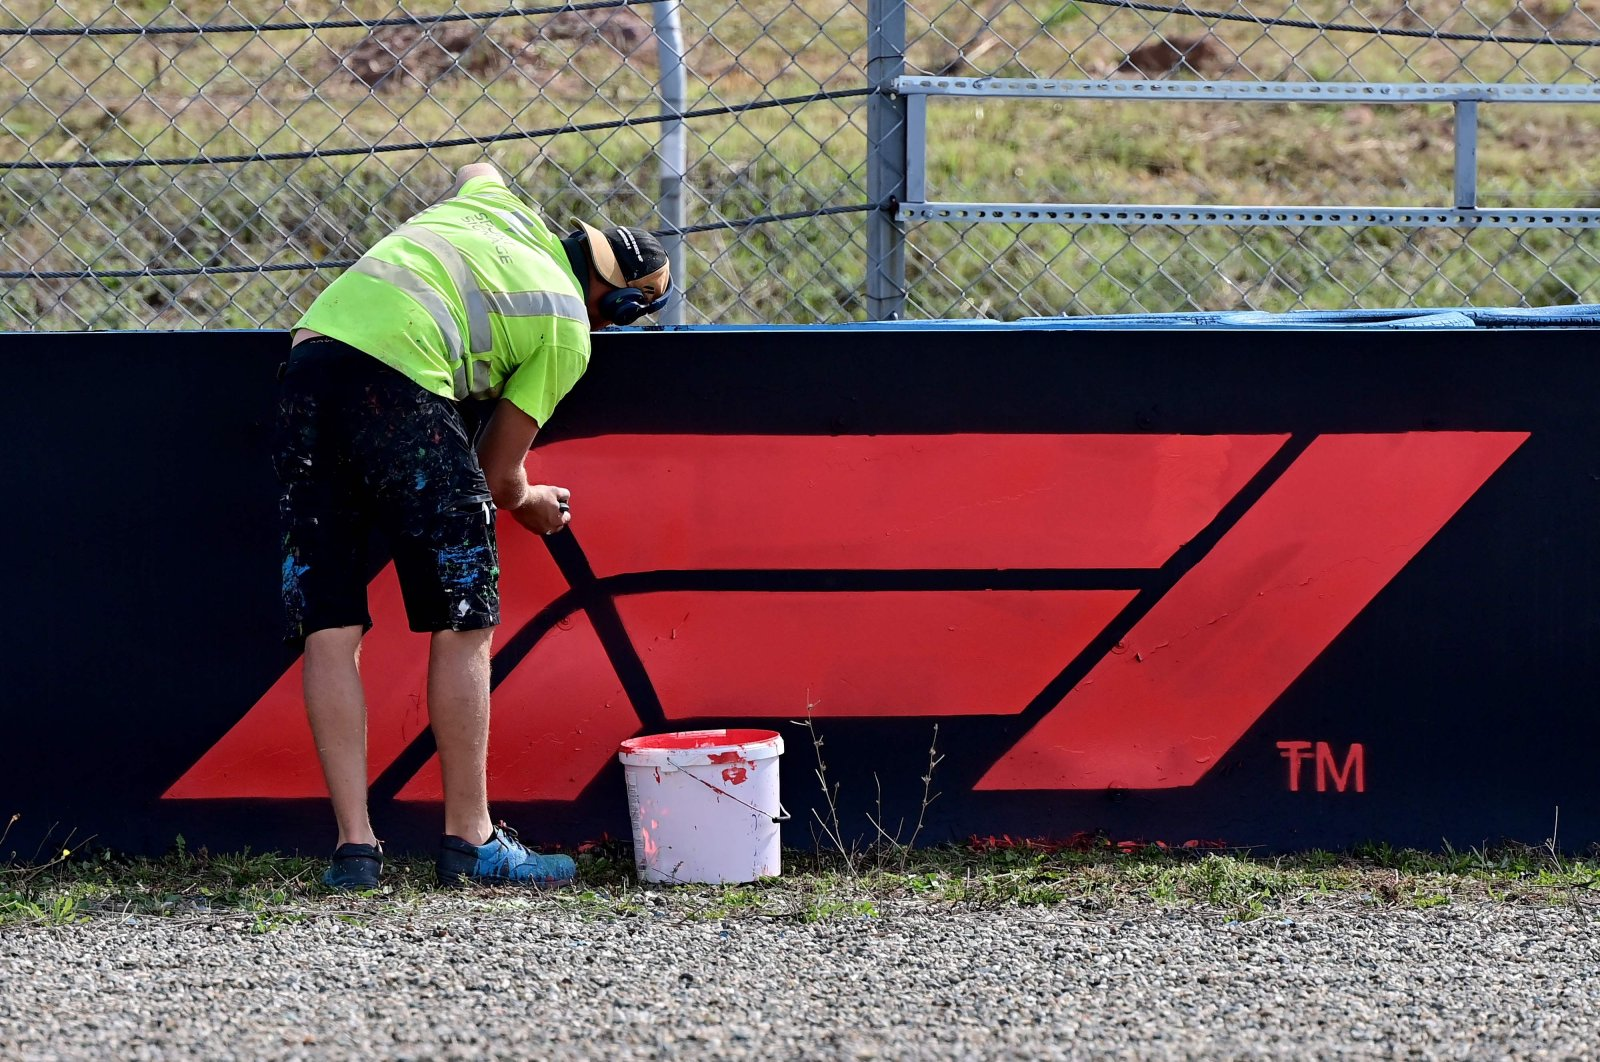 A worker paints the F1 logo on a board on the side of the tracks of Intercity Istanbul Park in Istanbul, Turkey, Oct. 7, 2021. (AFP Photo)